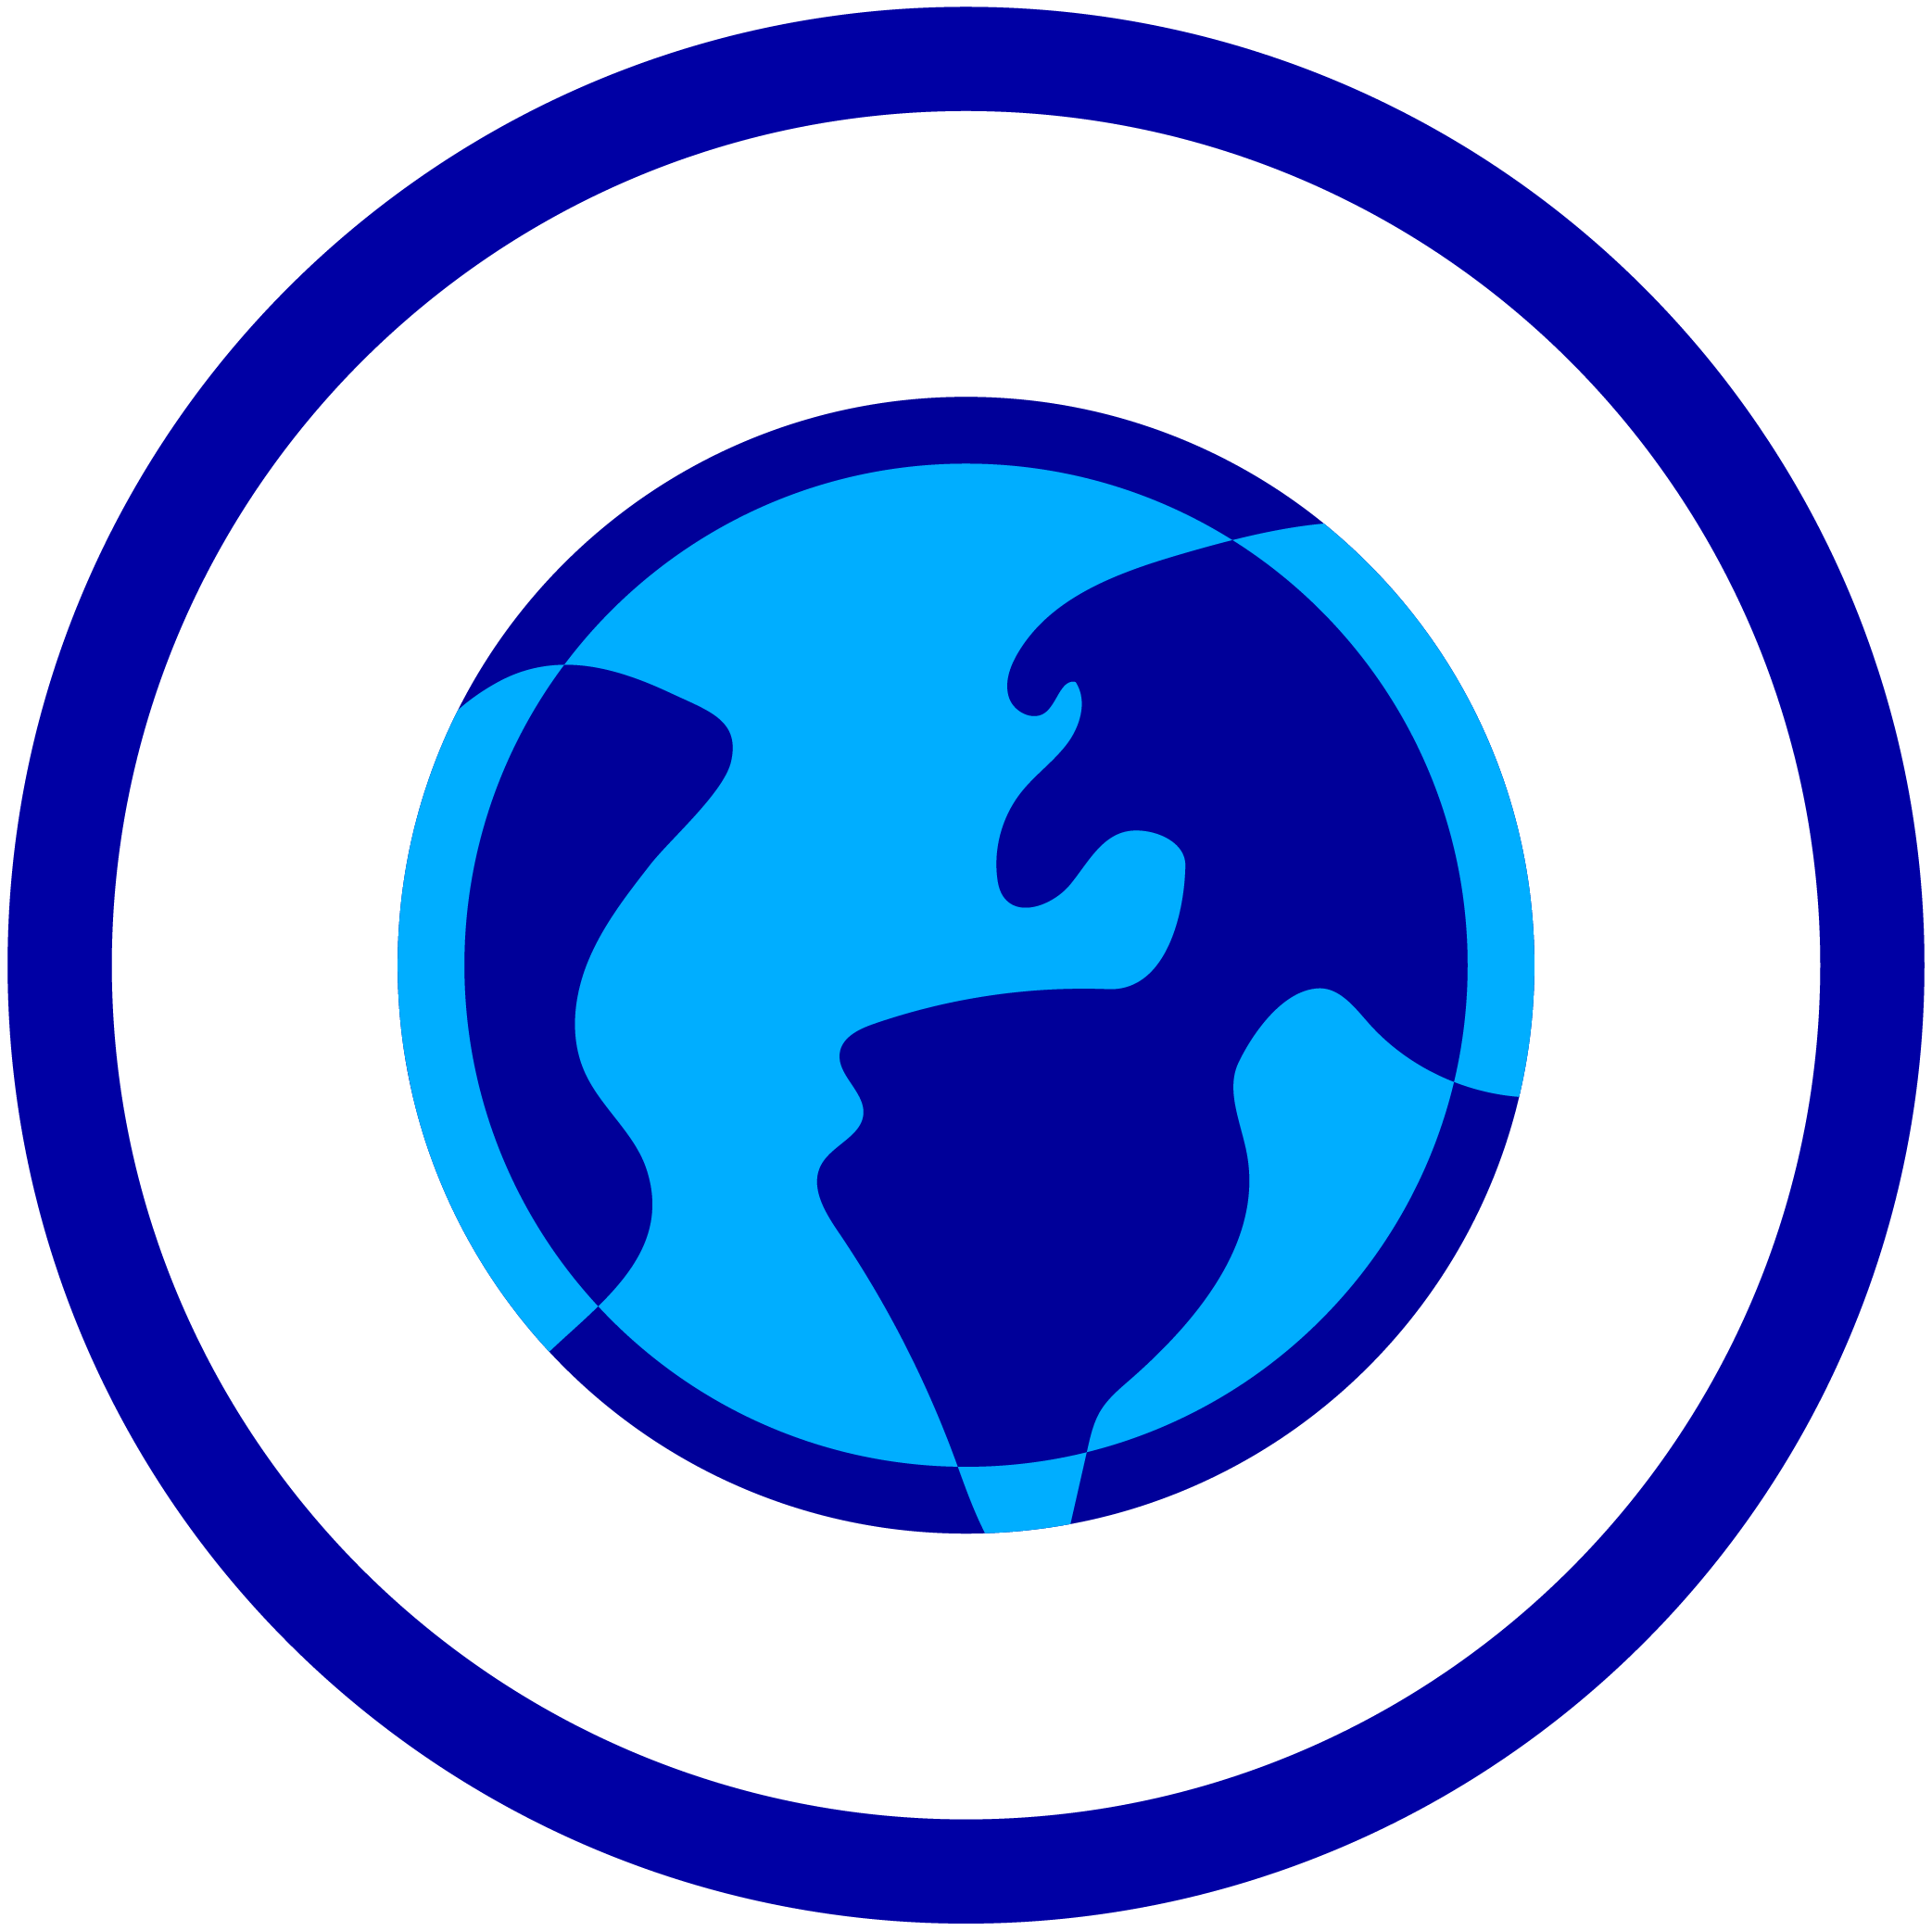 https://jp.fi-group.com/wp-content/uploads/sites/18/2021/02/blue-icons-set_1-13.png